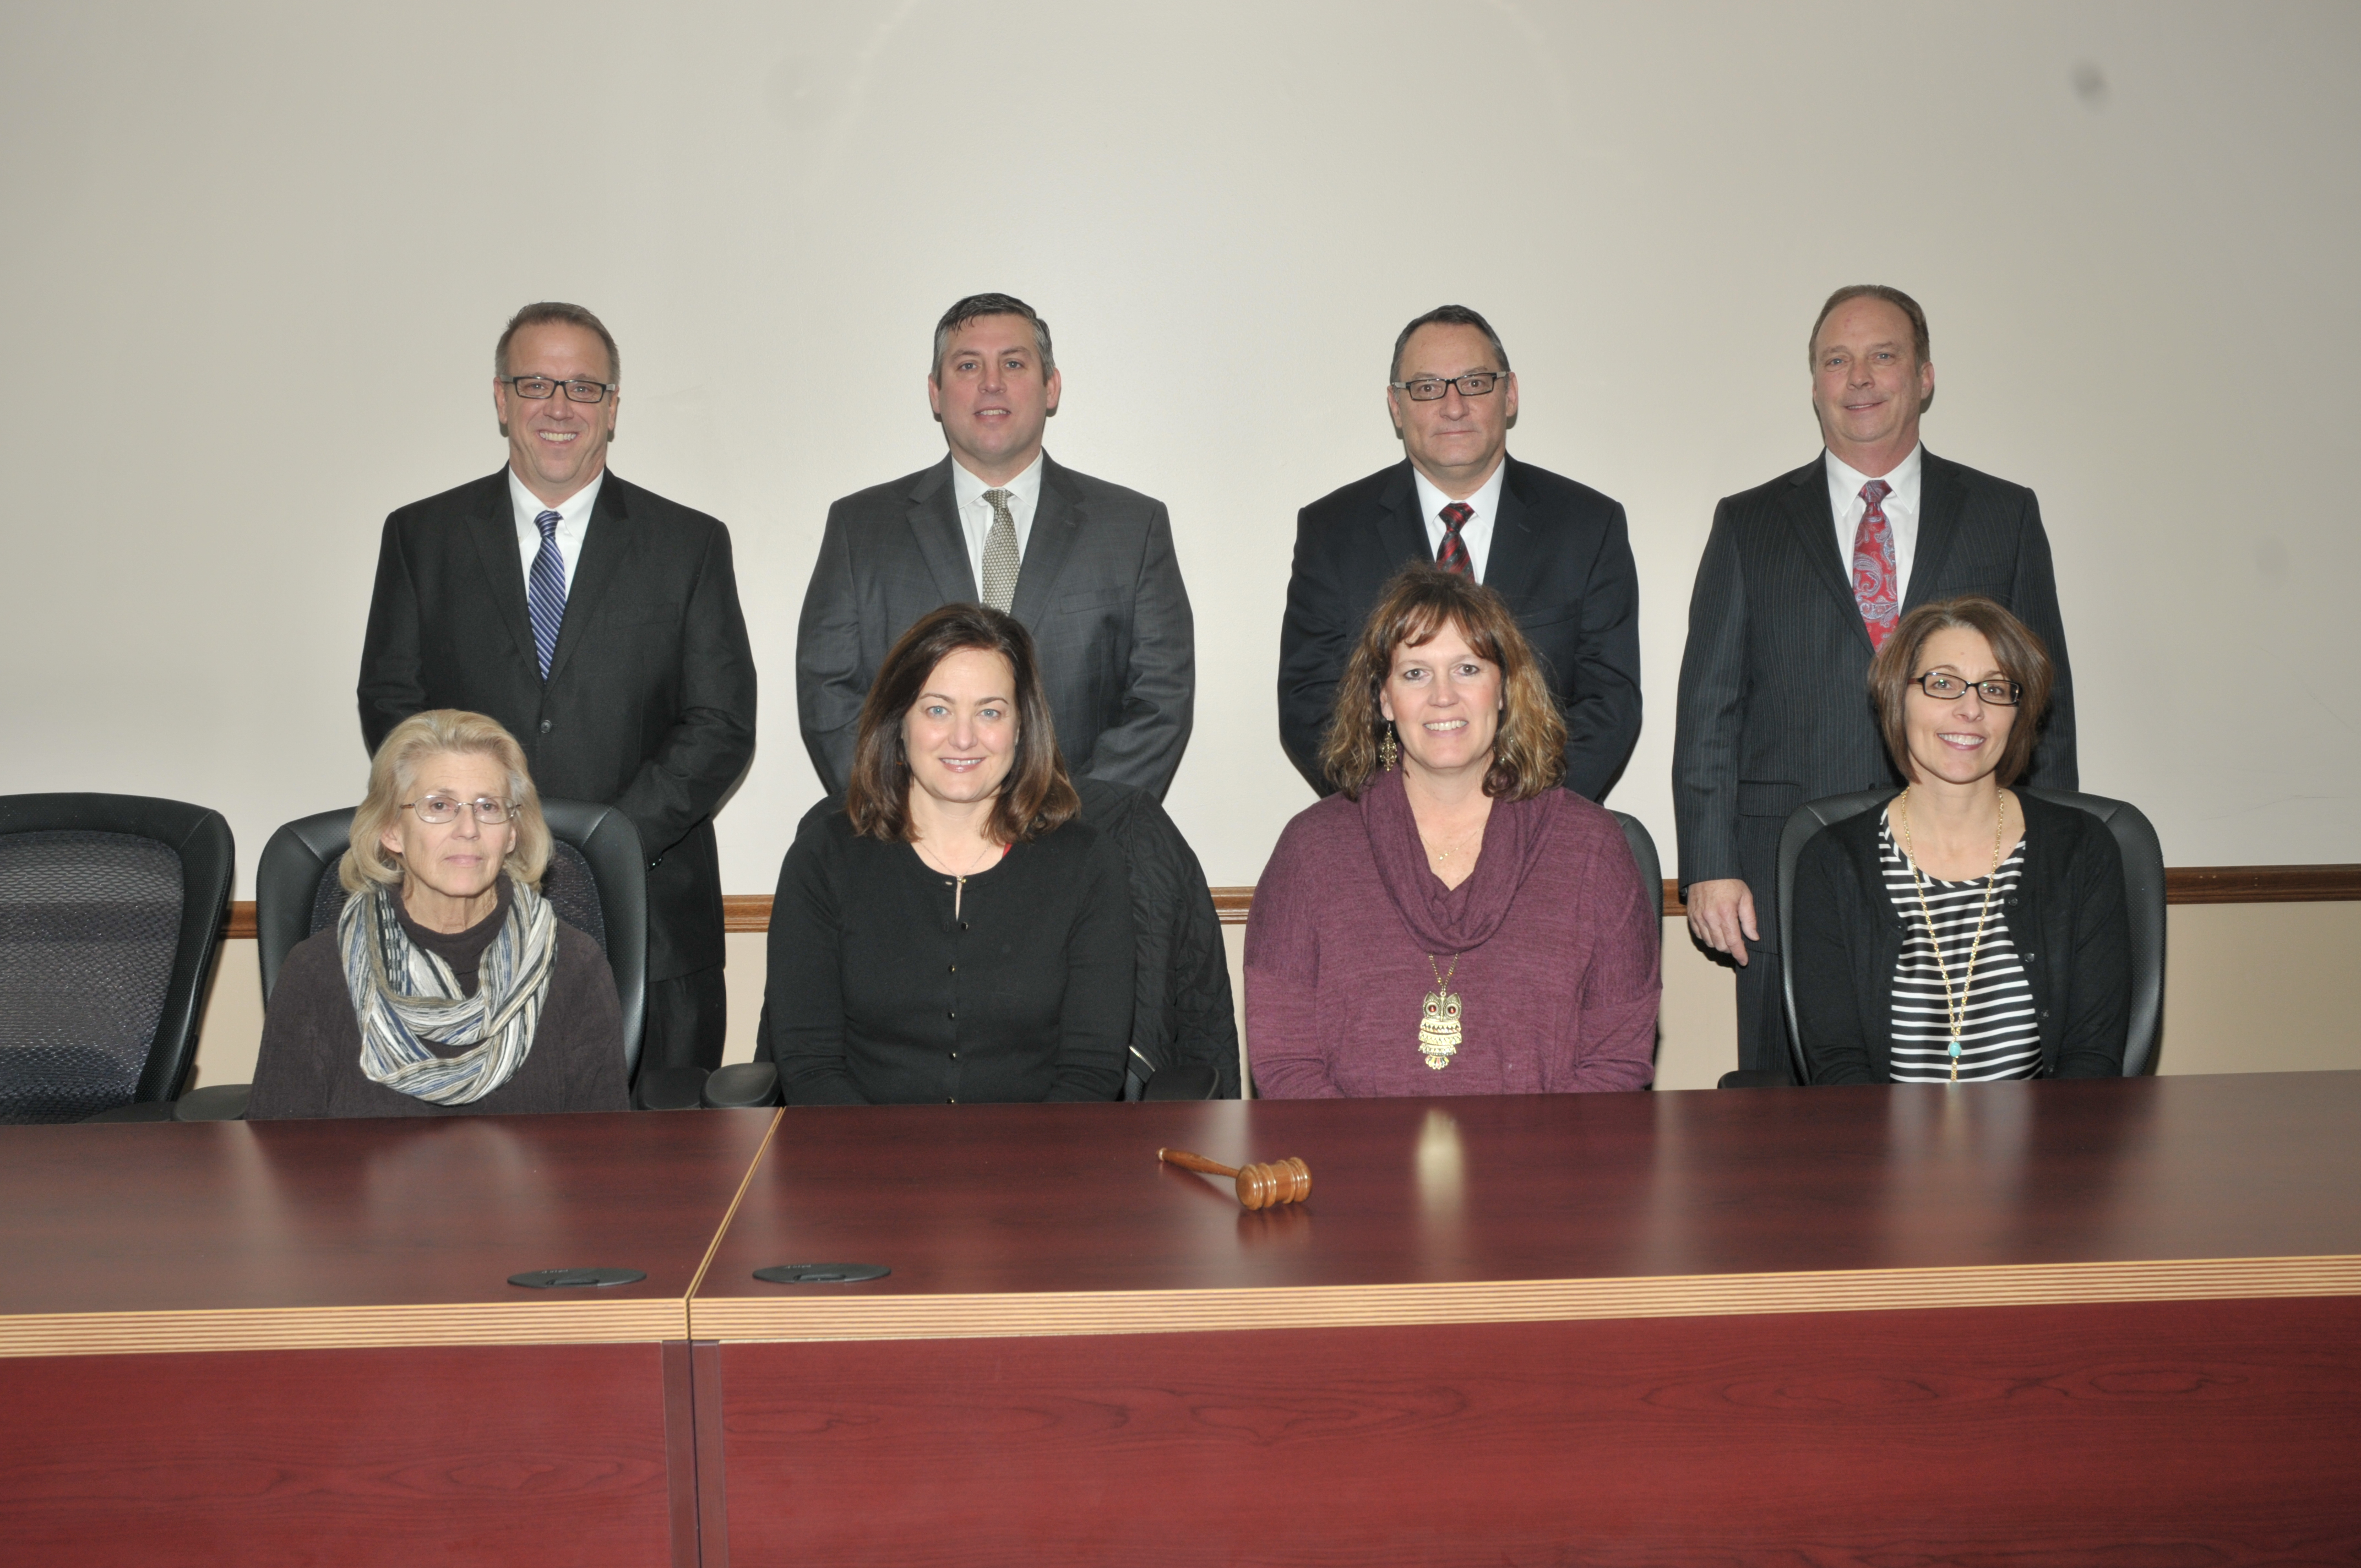 District 201 Board of Education Members